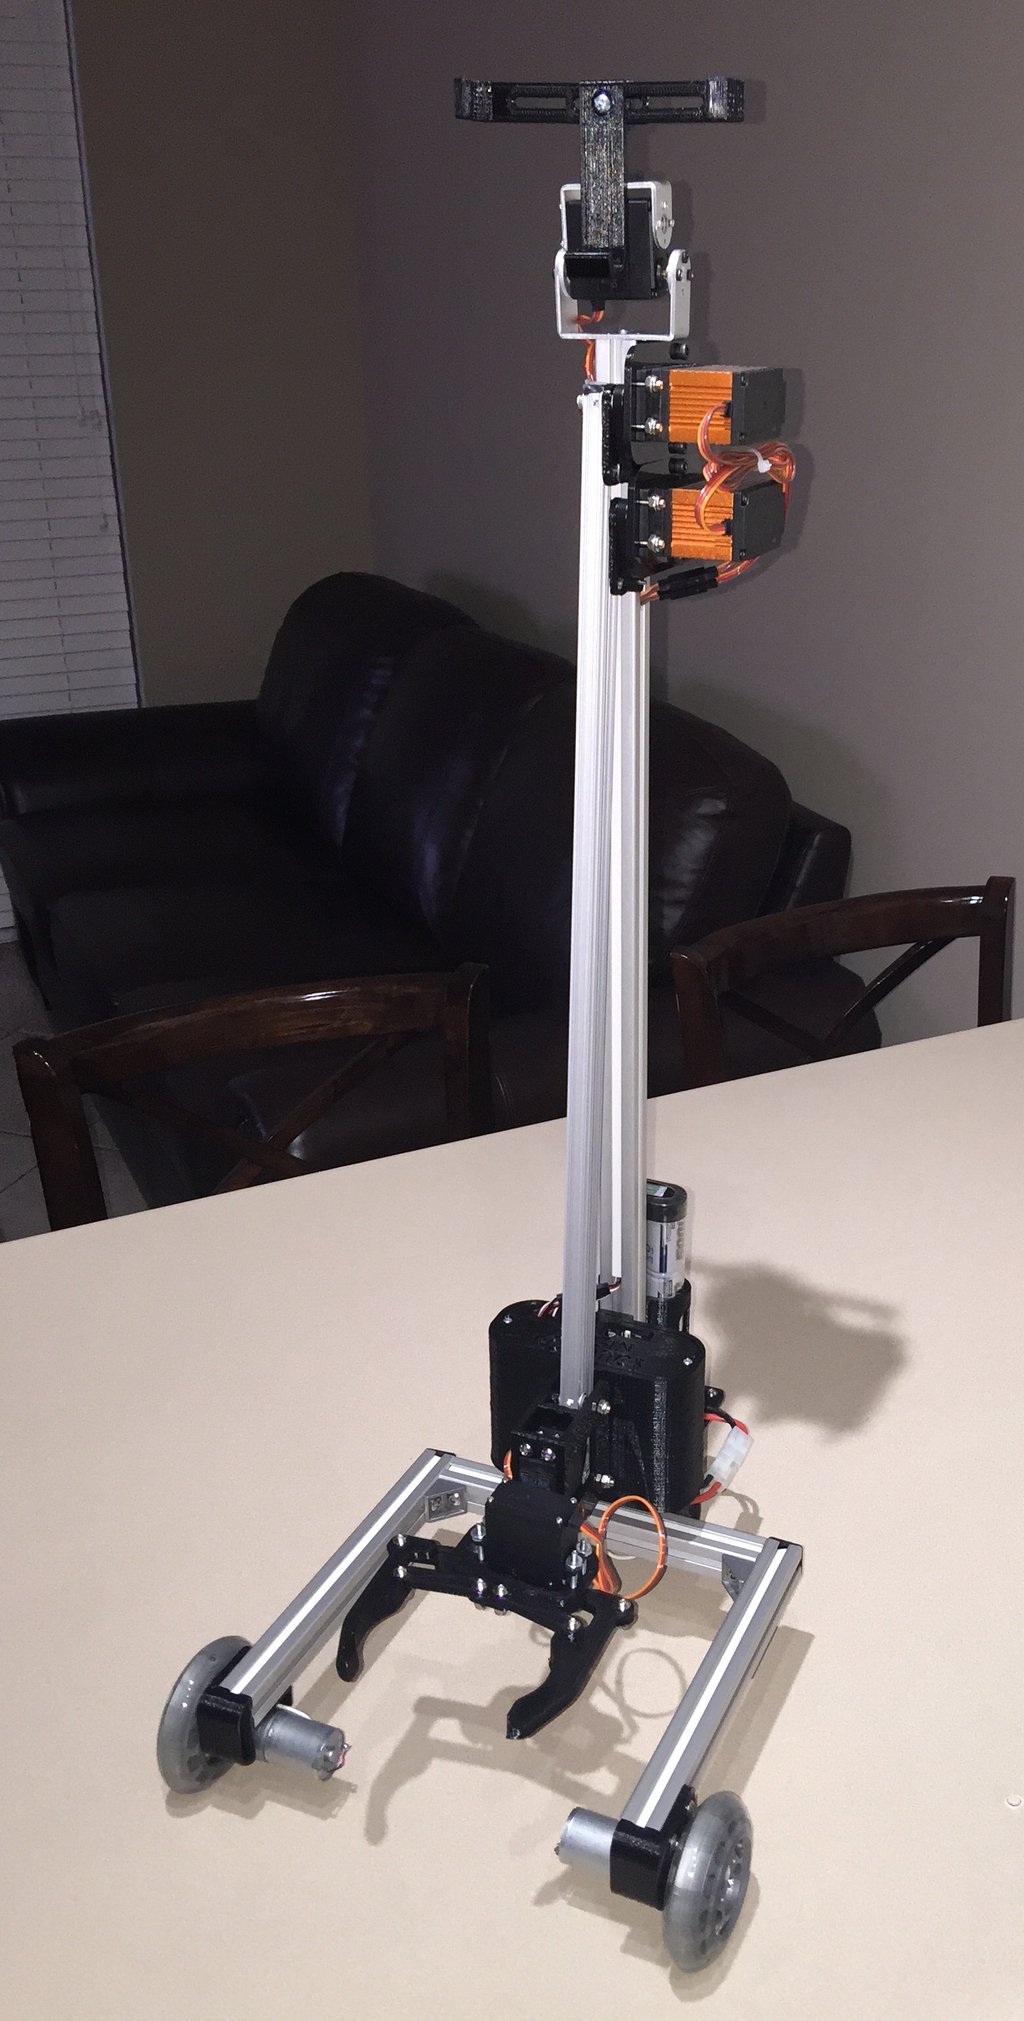 OrigiBot Production Model Assembled